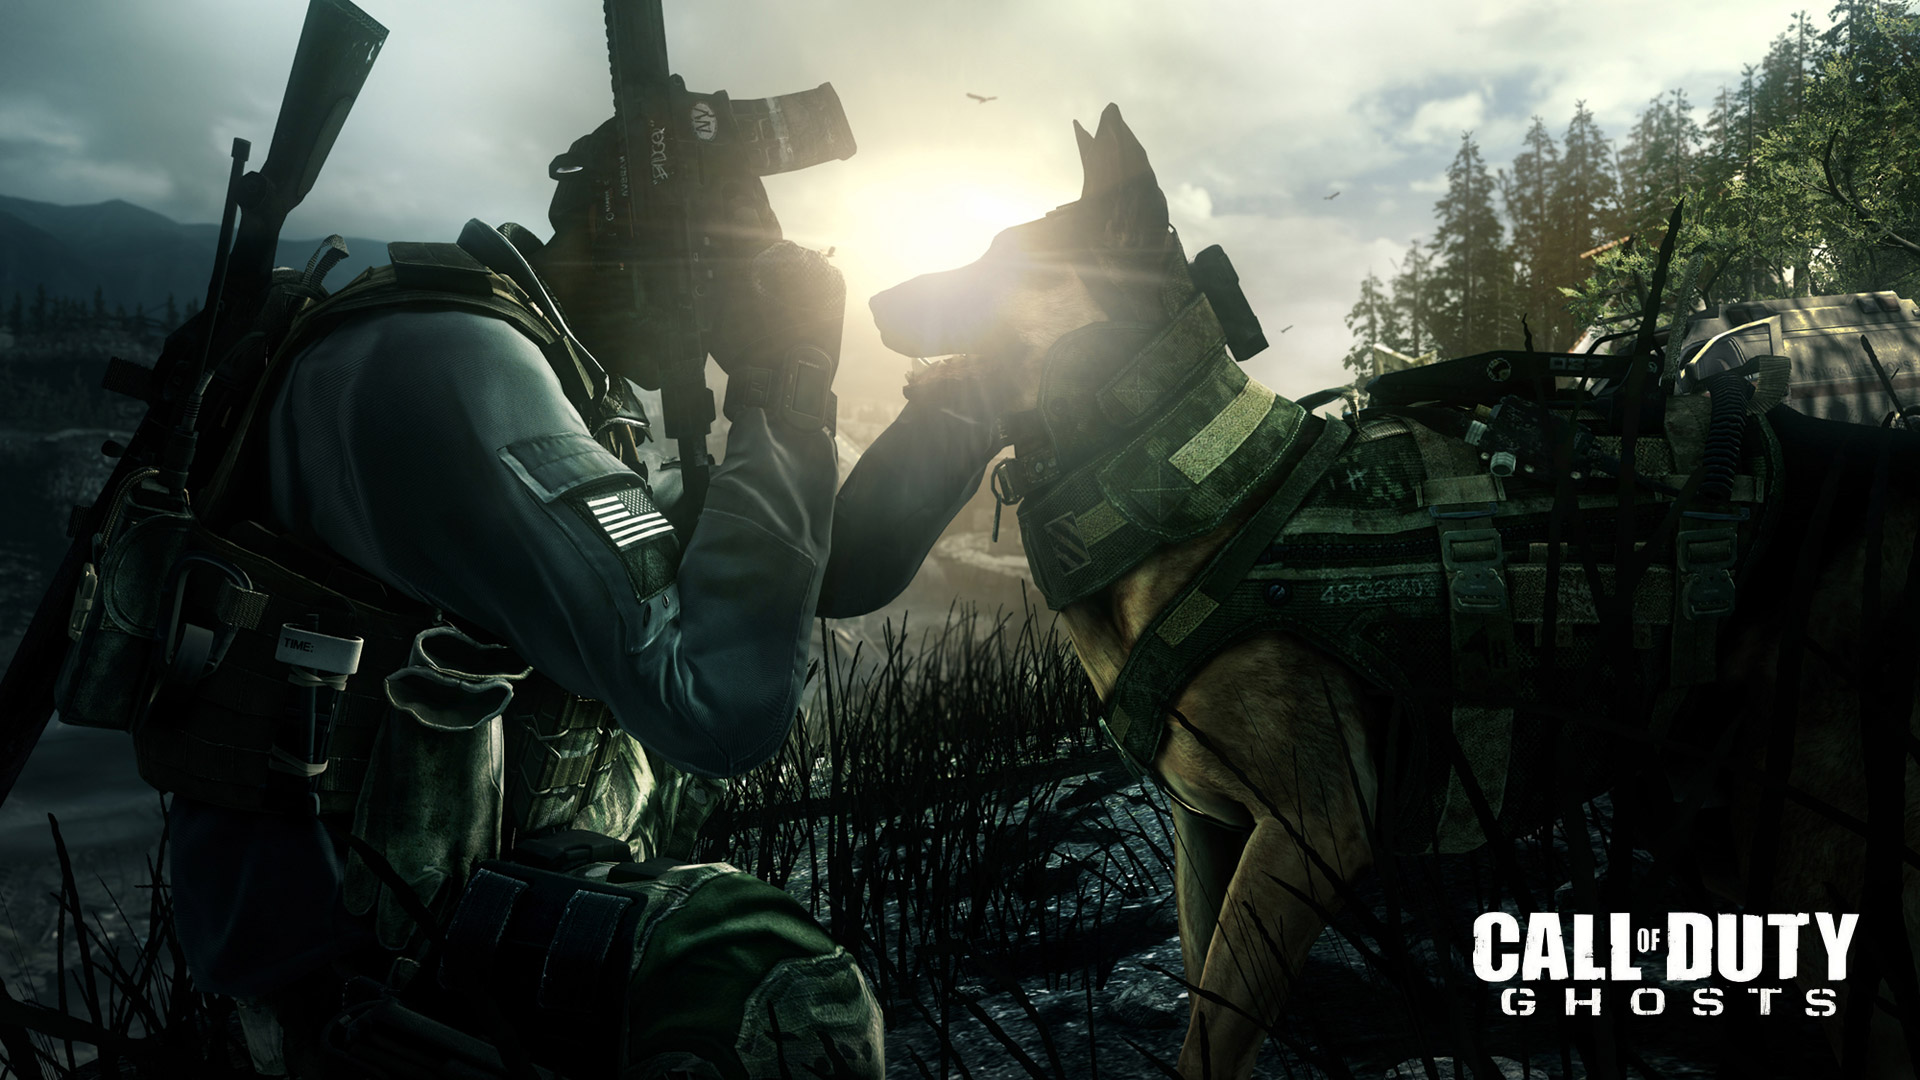 Free Call of Duty: Ghosts Wallpaper in 1920x1080